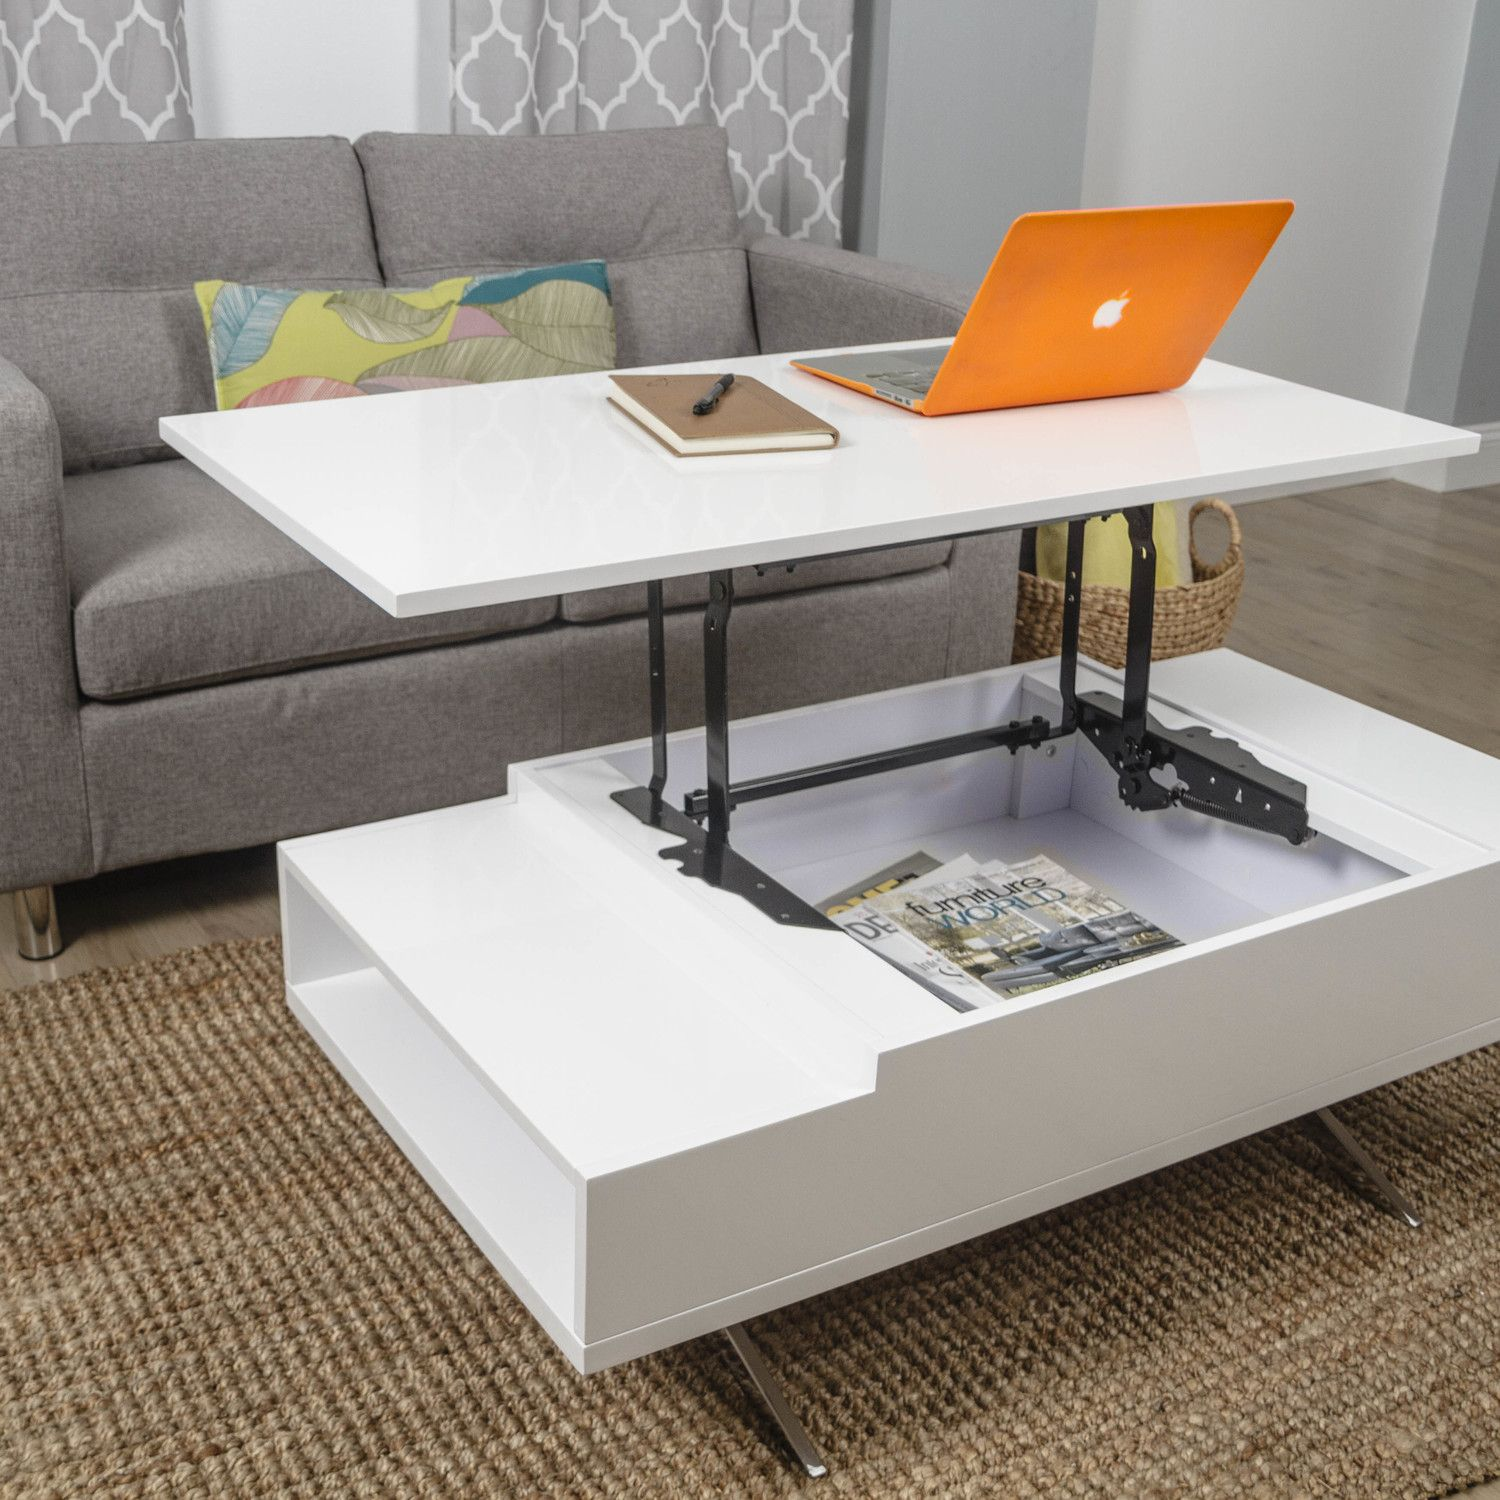 Computer Coffee Table Matrix Stelar White Lift Top Rectangular Coffee Table Small